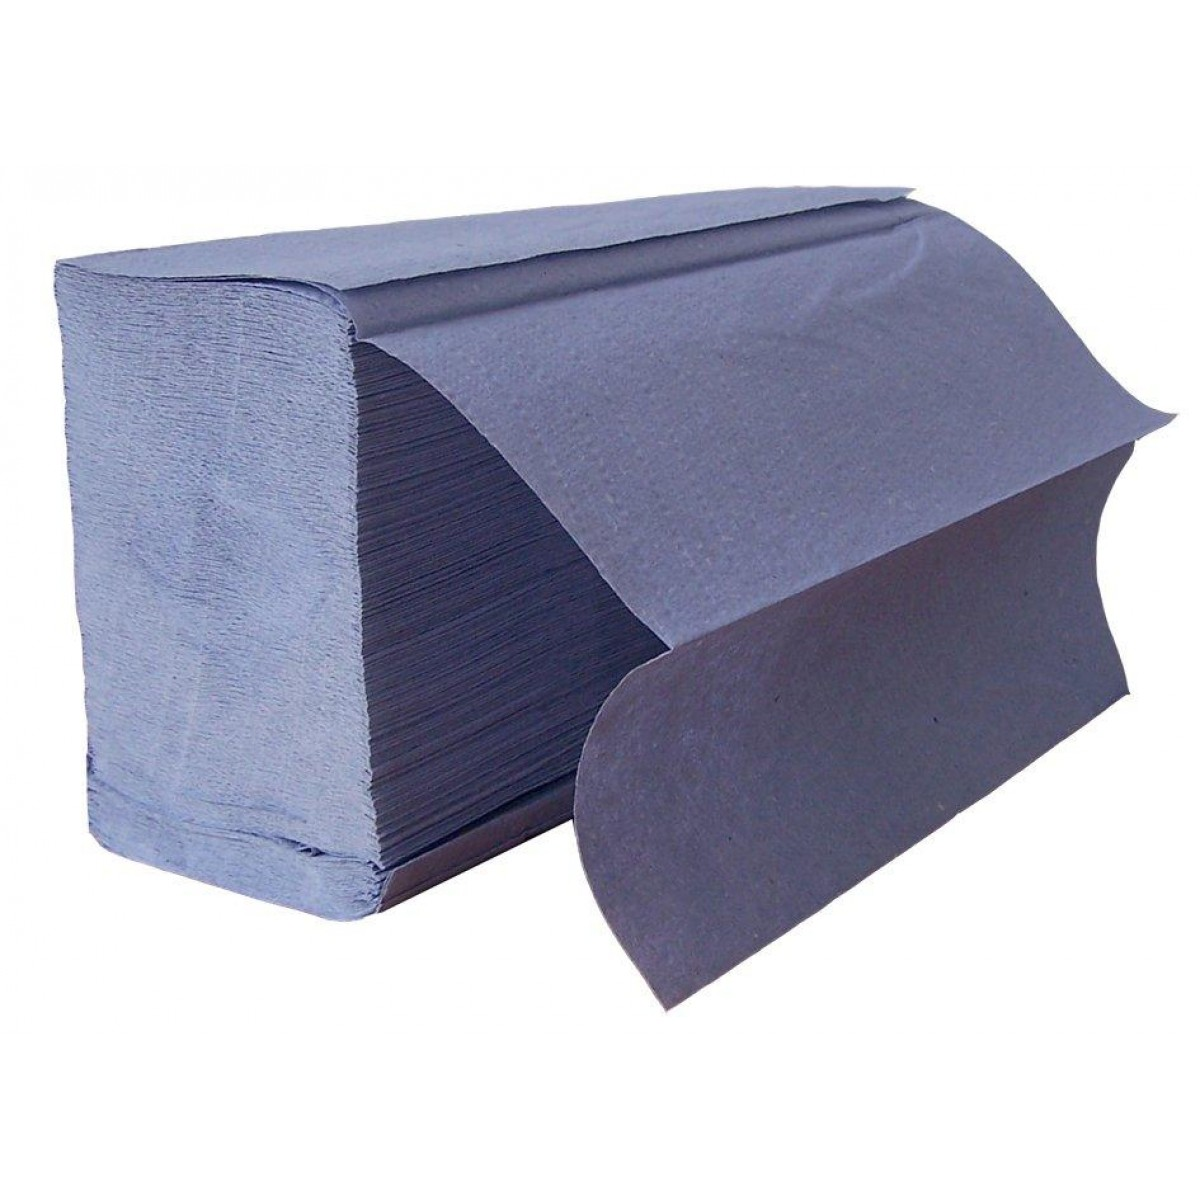 paper towels and hygiene paper first stop supplies. Black Bedroom Furniture Sets. Home Design Ideas